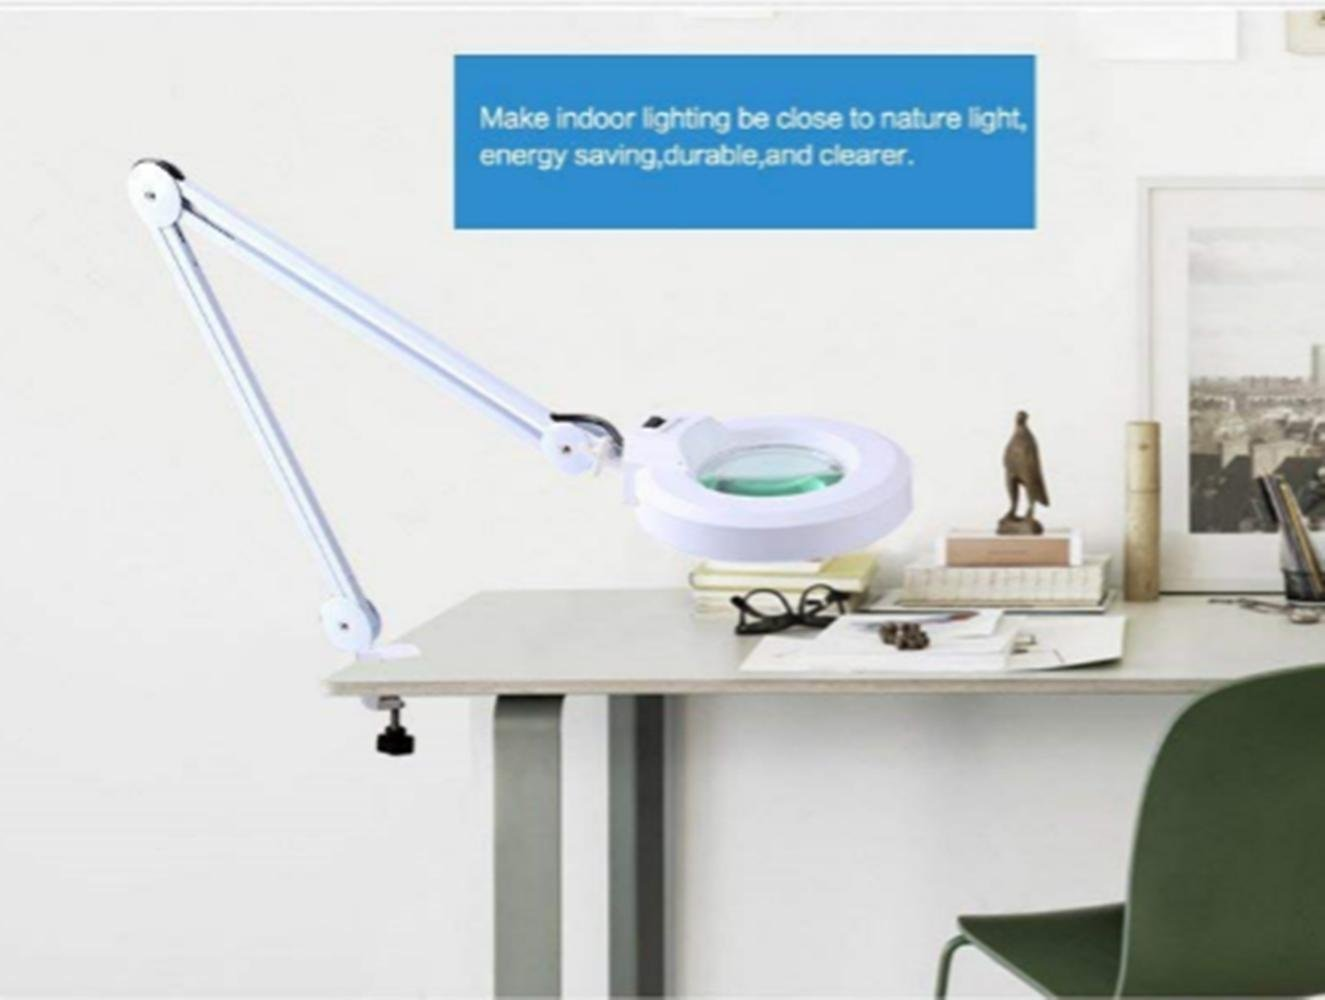 Drafting Work Light Workbench zorvo LED Magnifying Clamp Lamp 10X Magnifying Glass Daylight Bright Magnifier Desk Lamp with Clamp ,5 Diameter Lens, Adjustable Swing Arm Craft